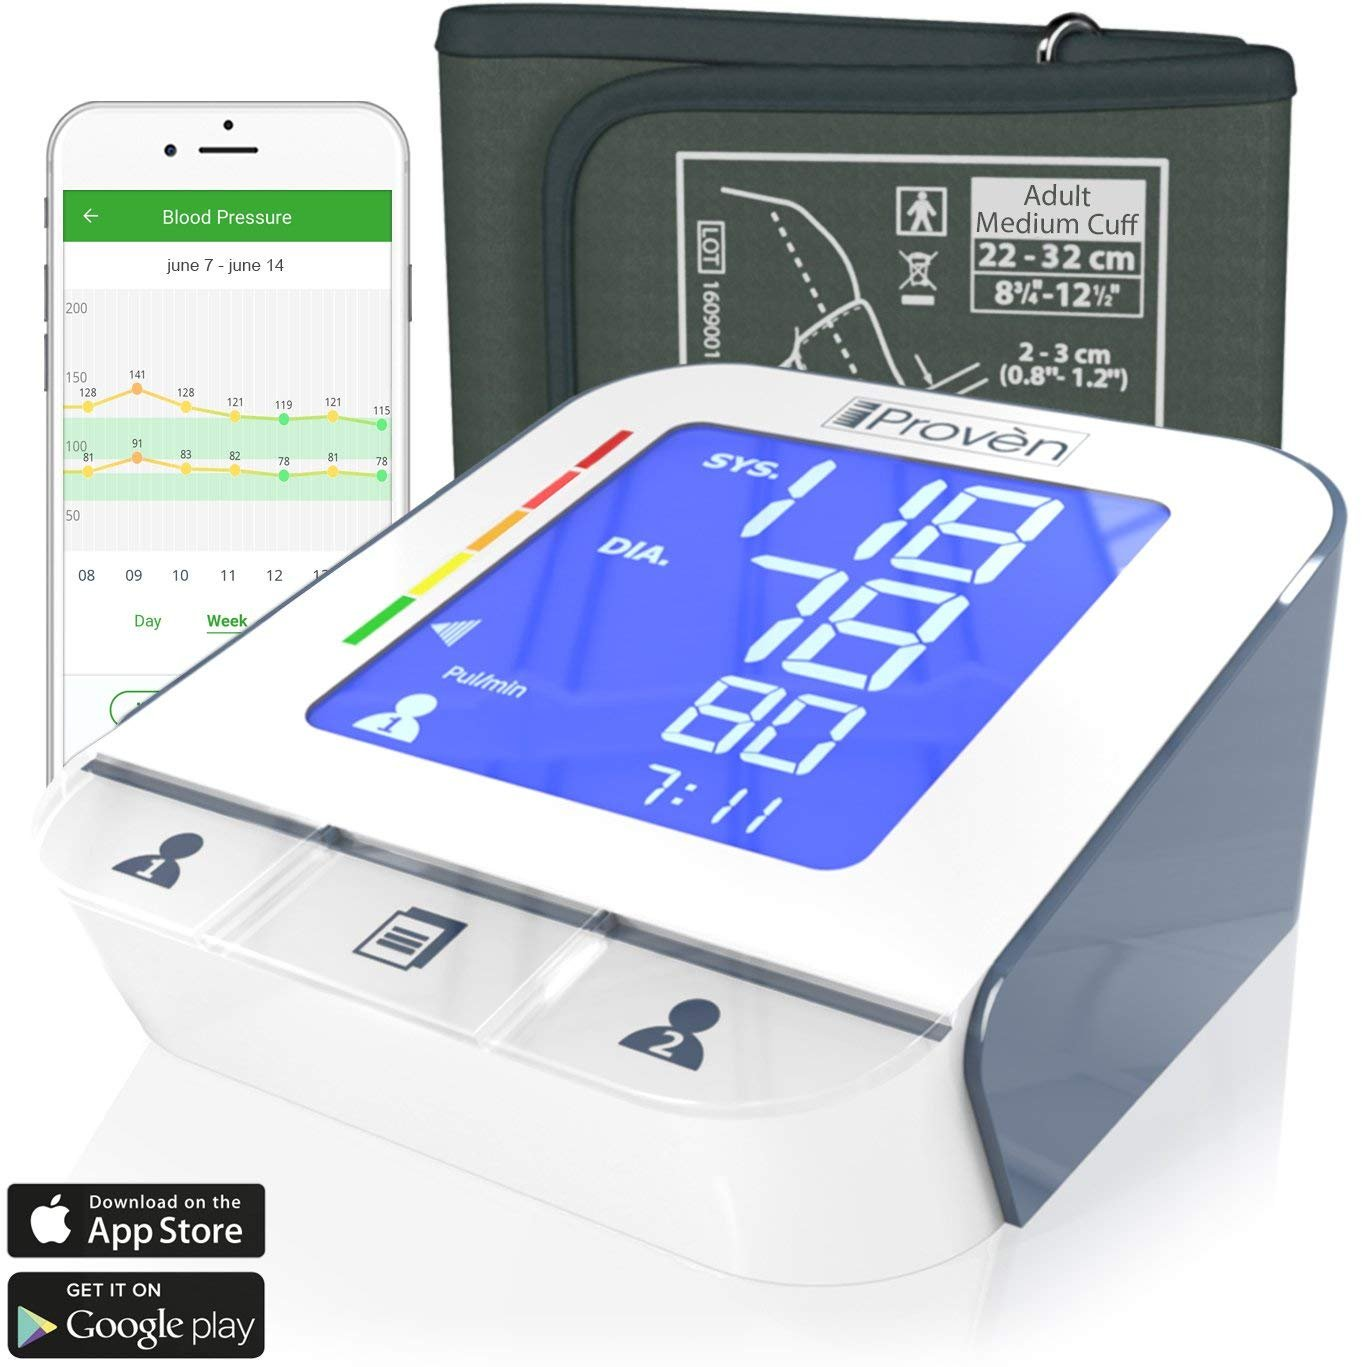 iProvèn Blood Pressure Monitor Clinical Upper Arm -Premium Technology: Double Pulse Detection Technology - Lightning Fast (30-40 sec) Highly Accurate - Free App and Medium Cuff (White-Gray)